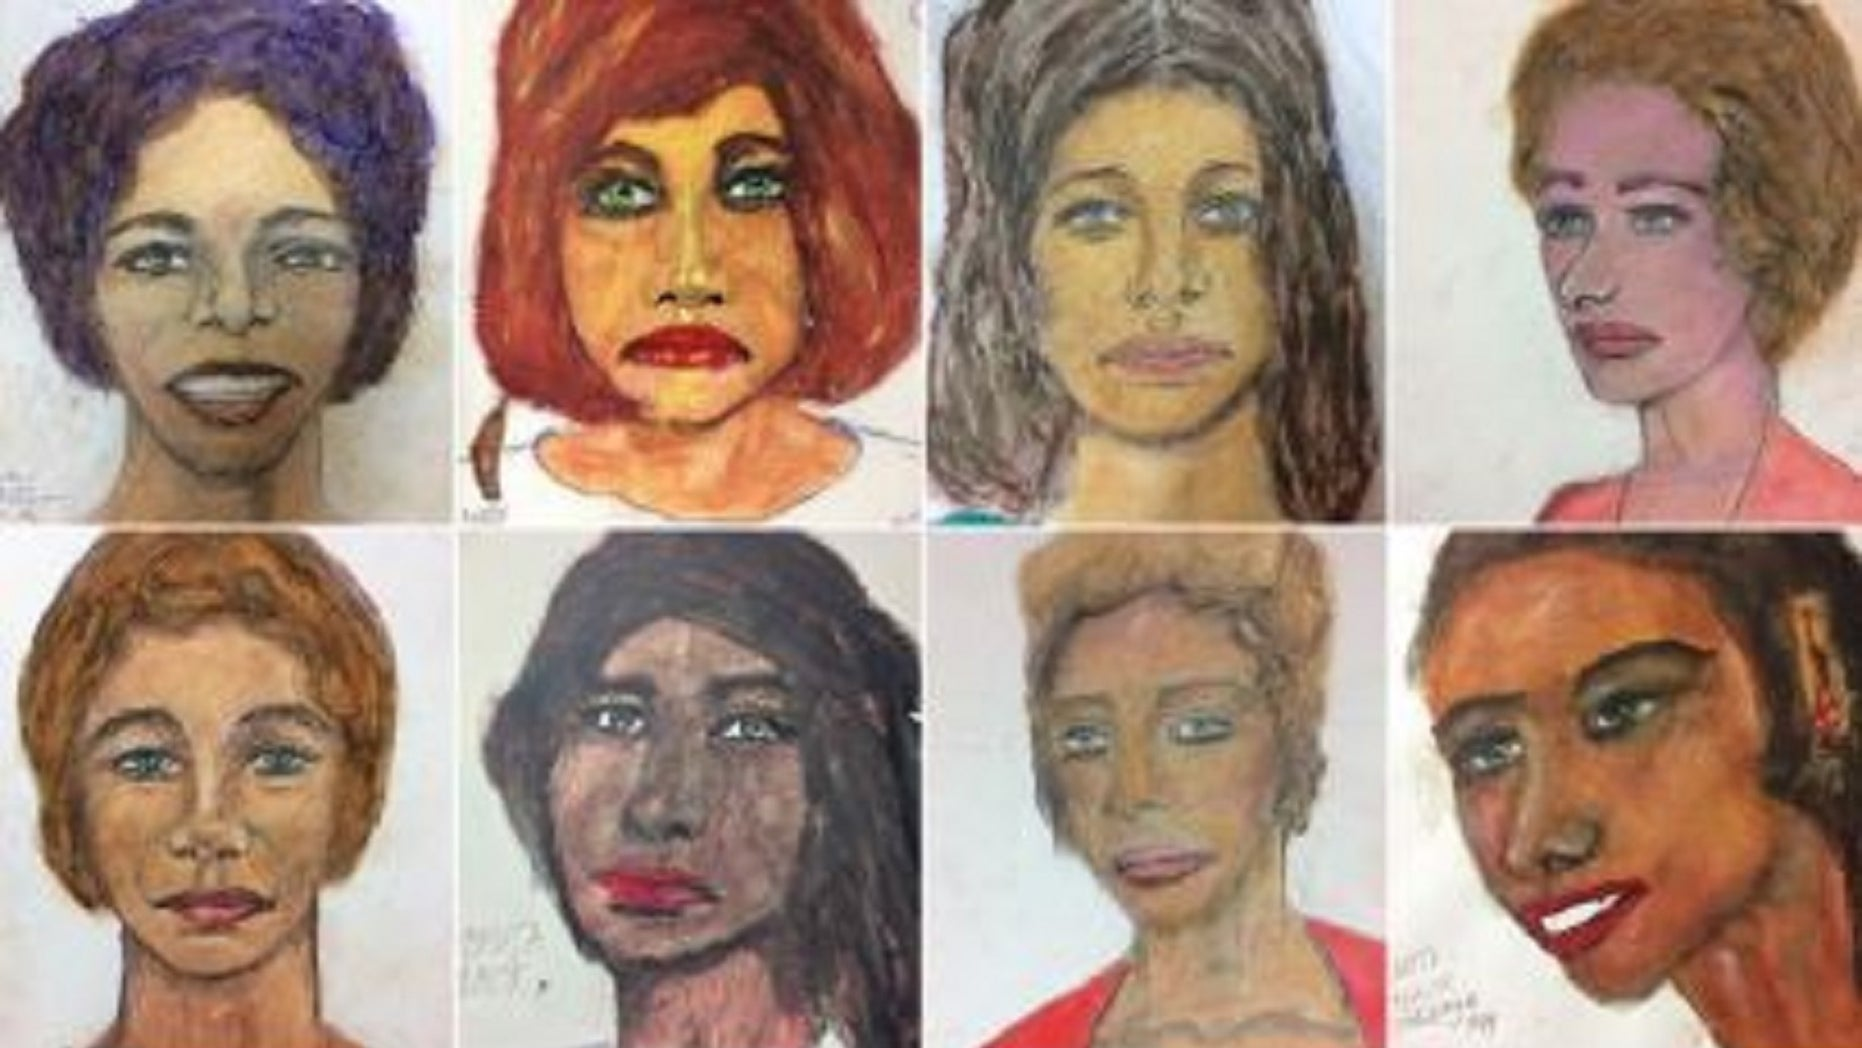 FBI shares victim sketches drawn by admitted serial killer